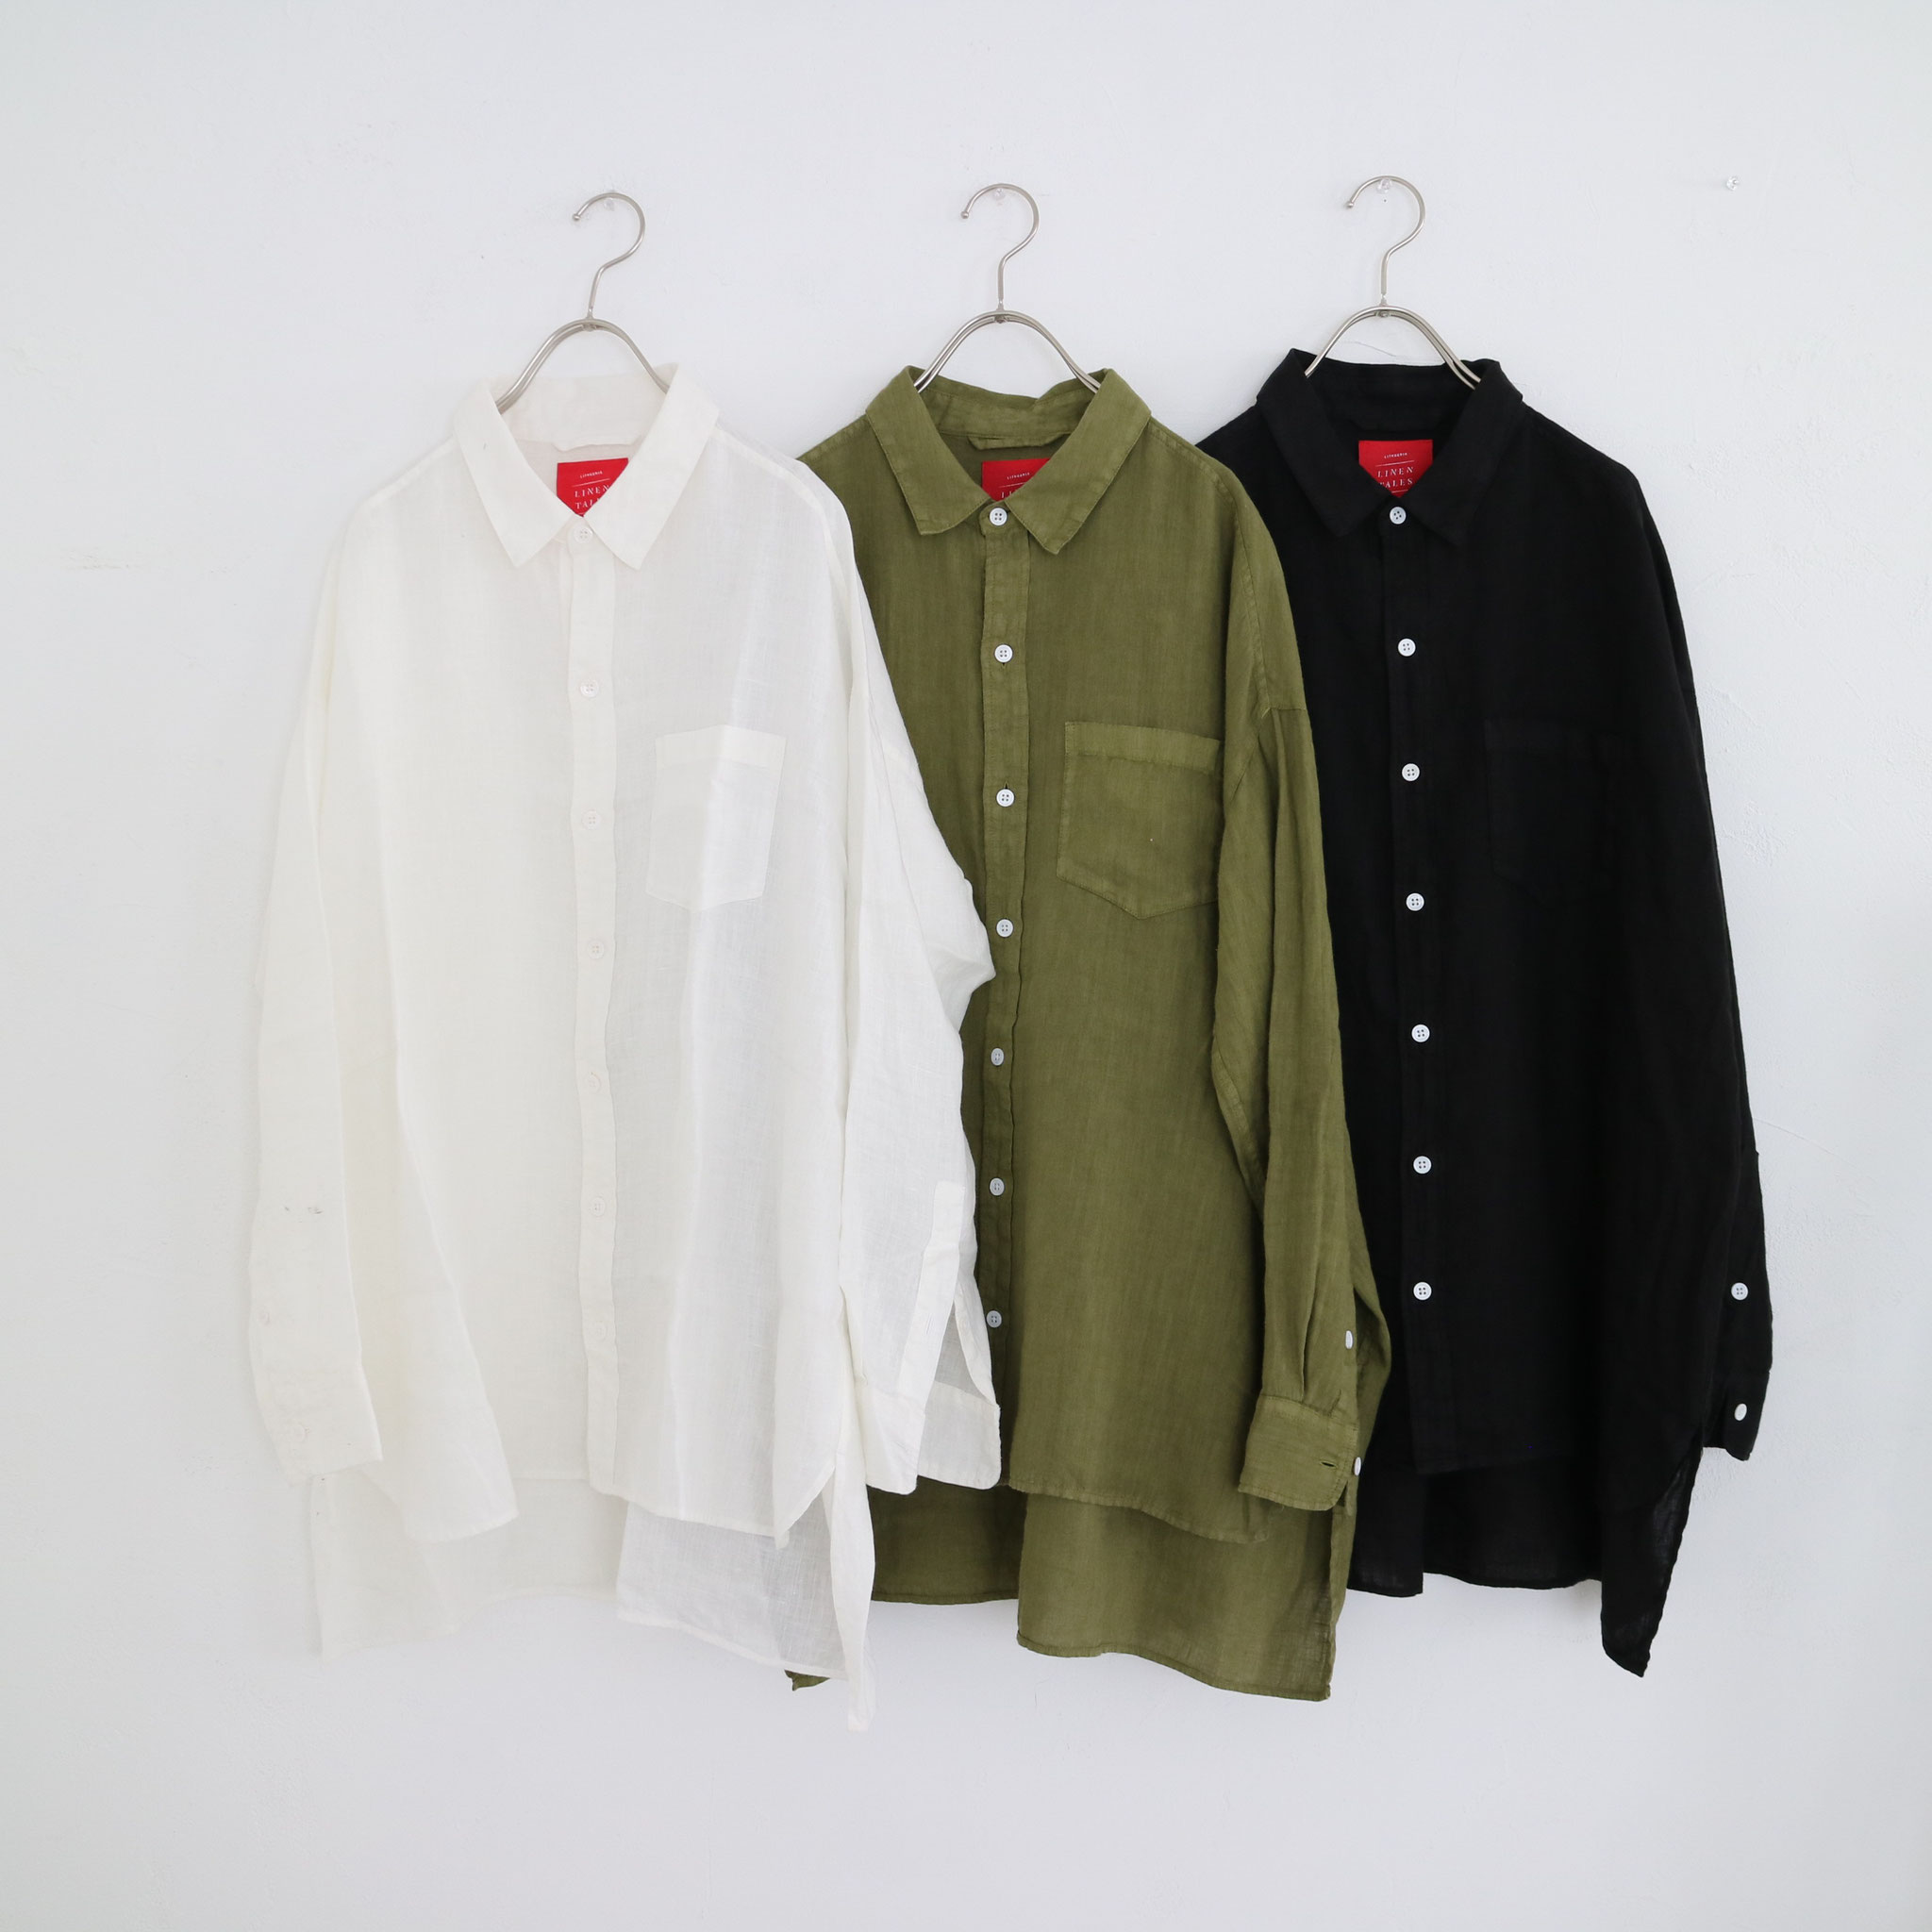 White→ Martini olive→ Black